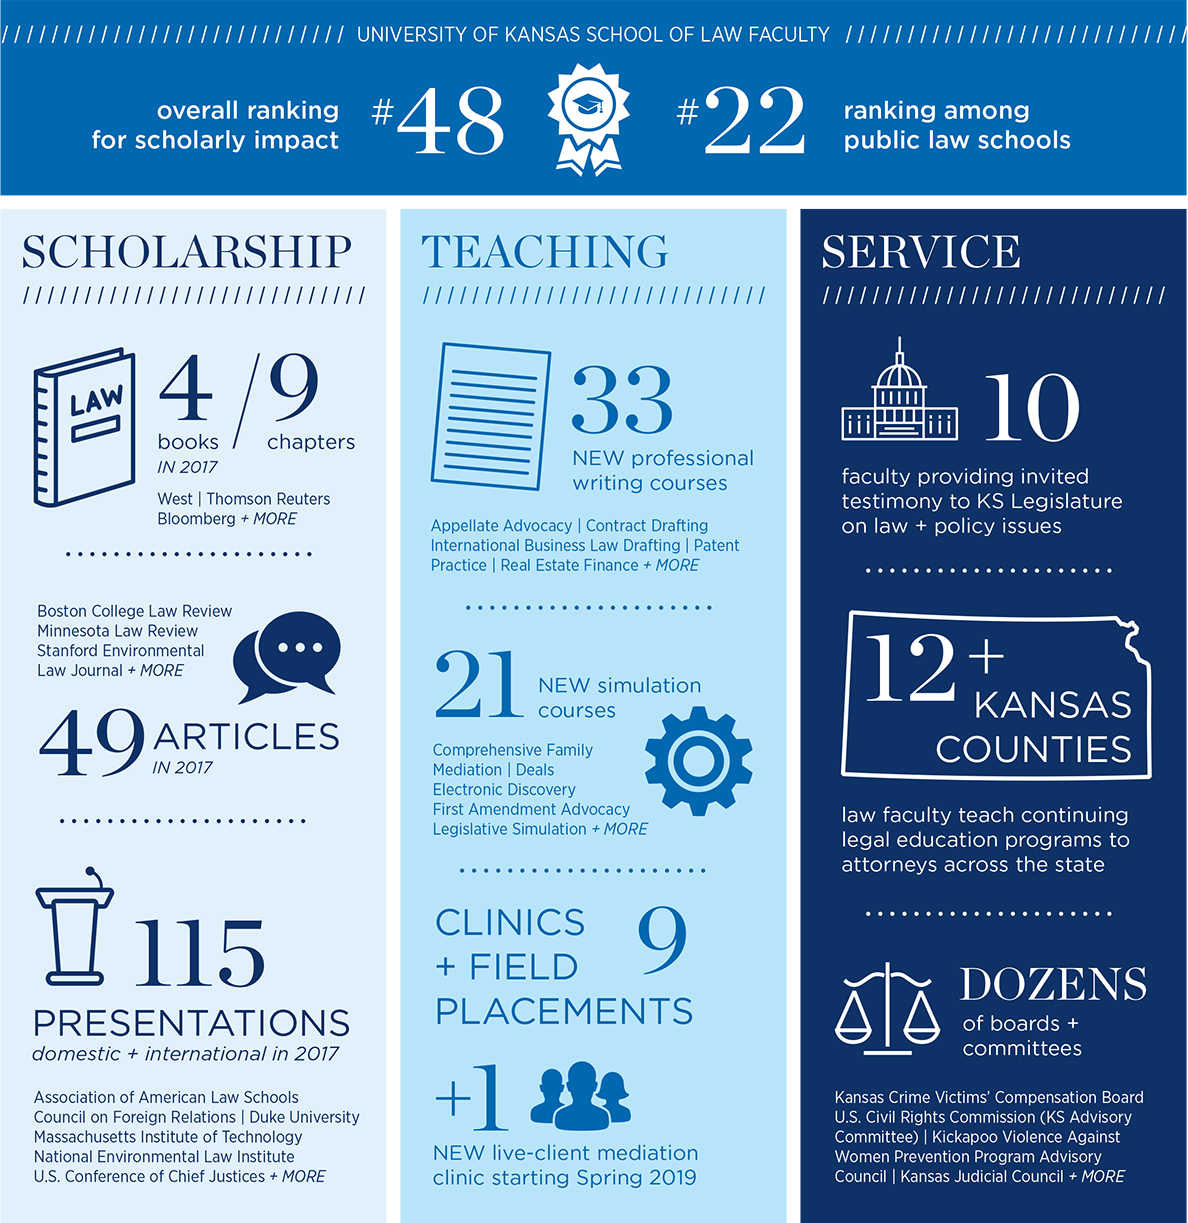 KU Law Faculty Infographic